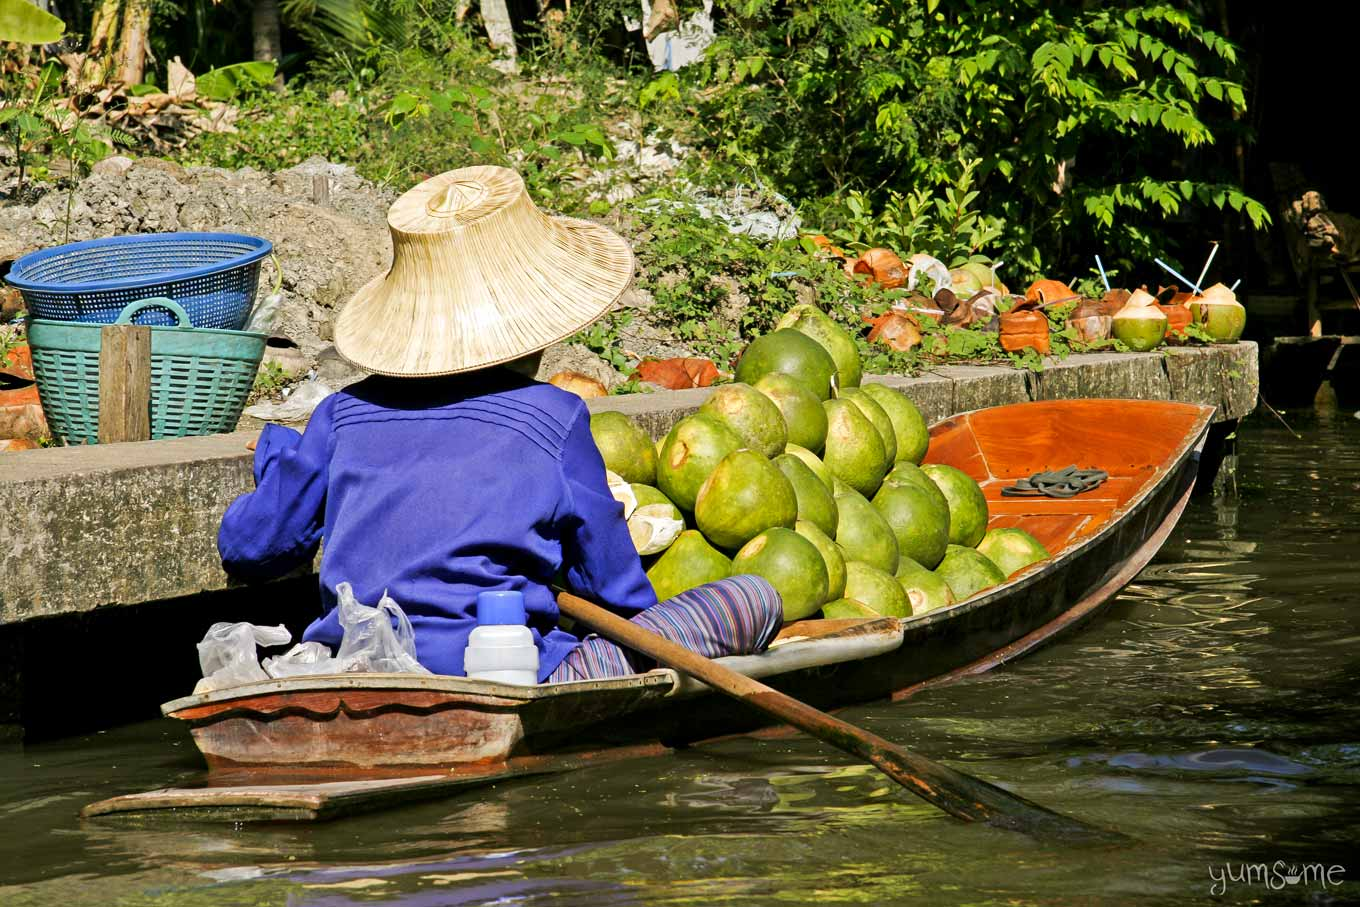 A trader selling pomelos in their boat at a floating market in Thailand.